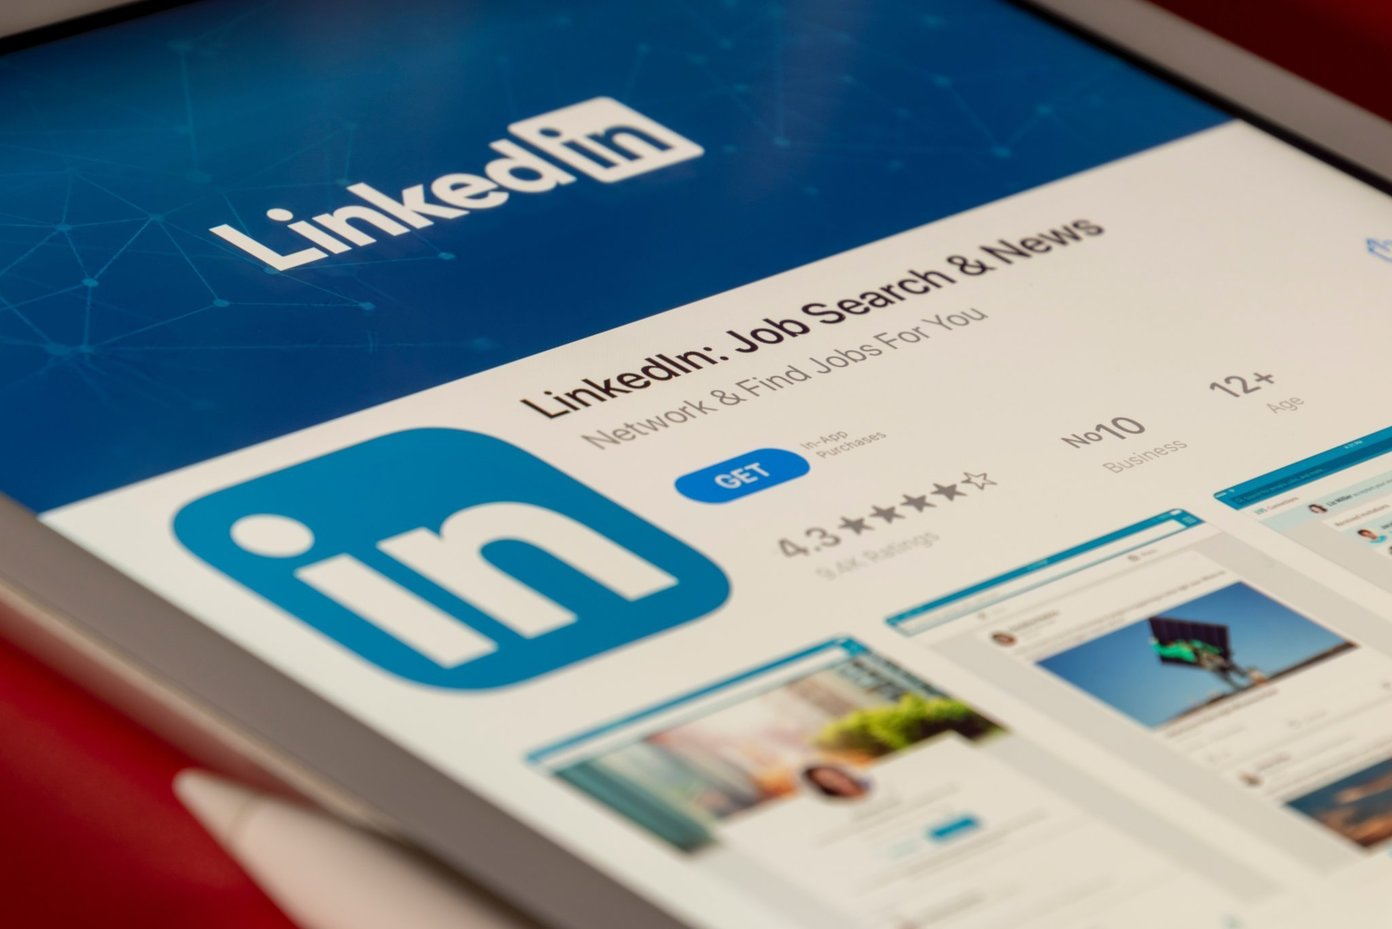 How To Deactivate Linkedin Account